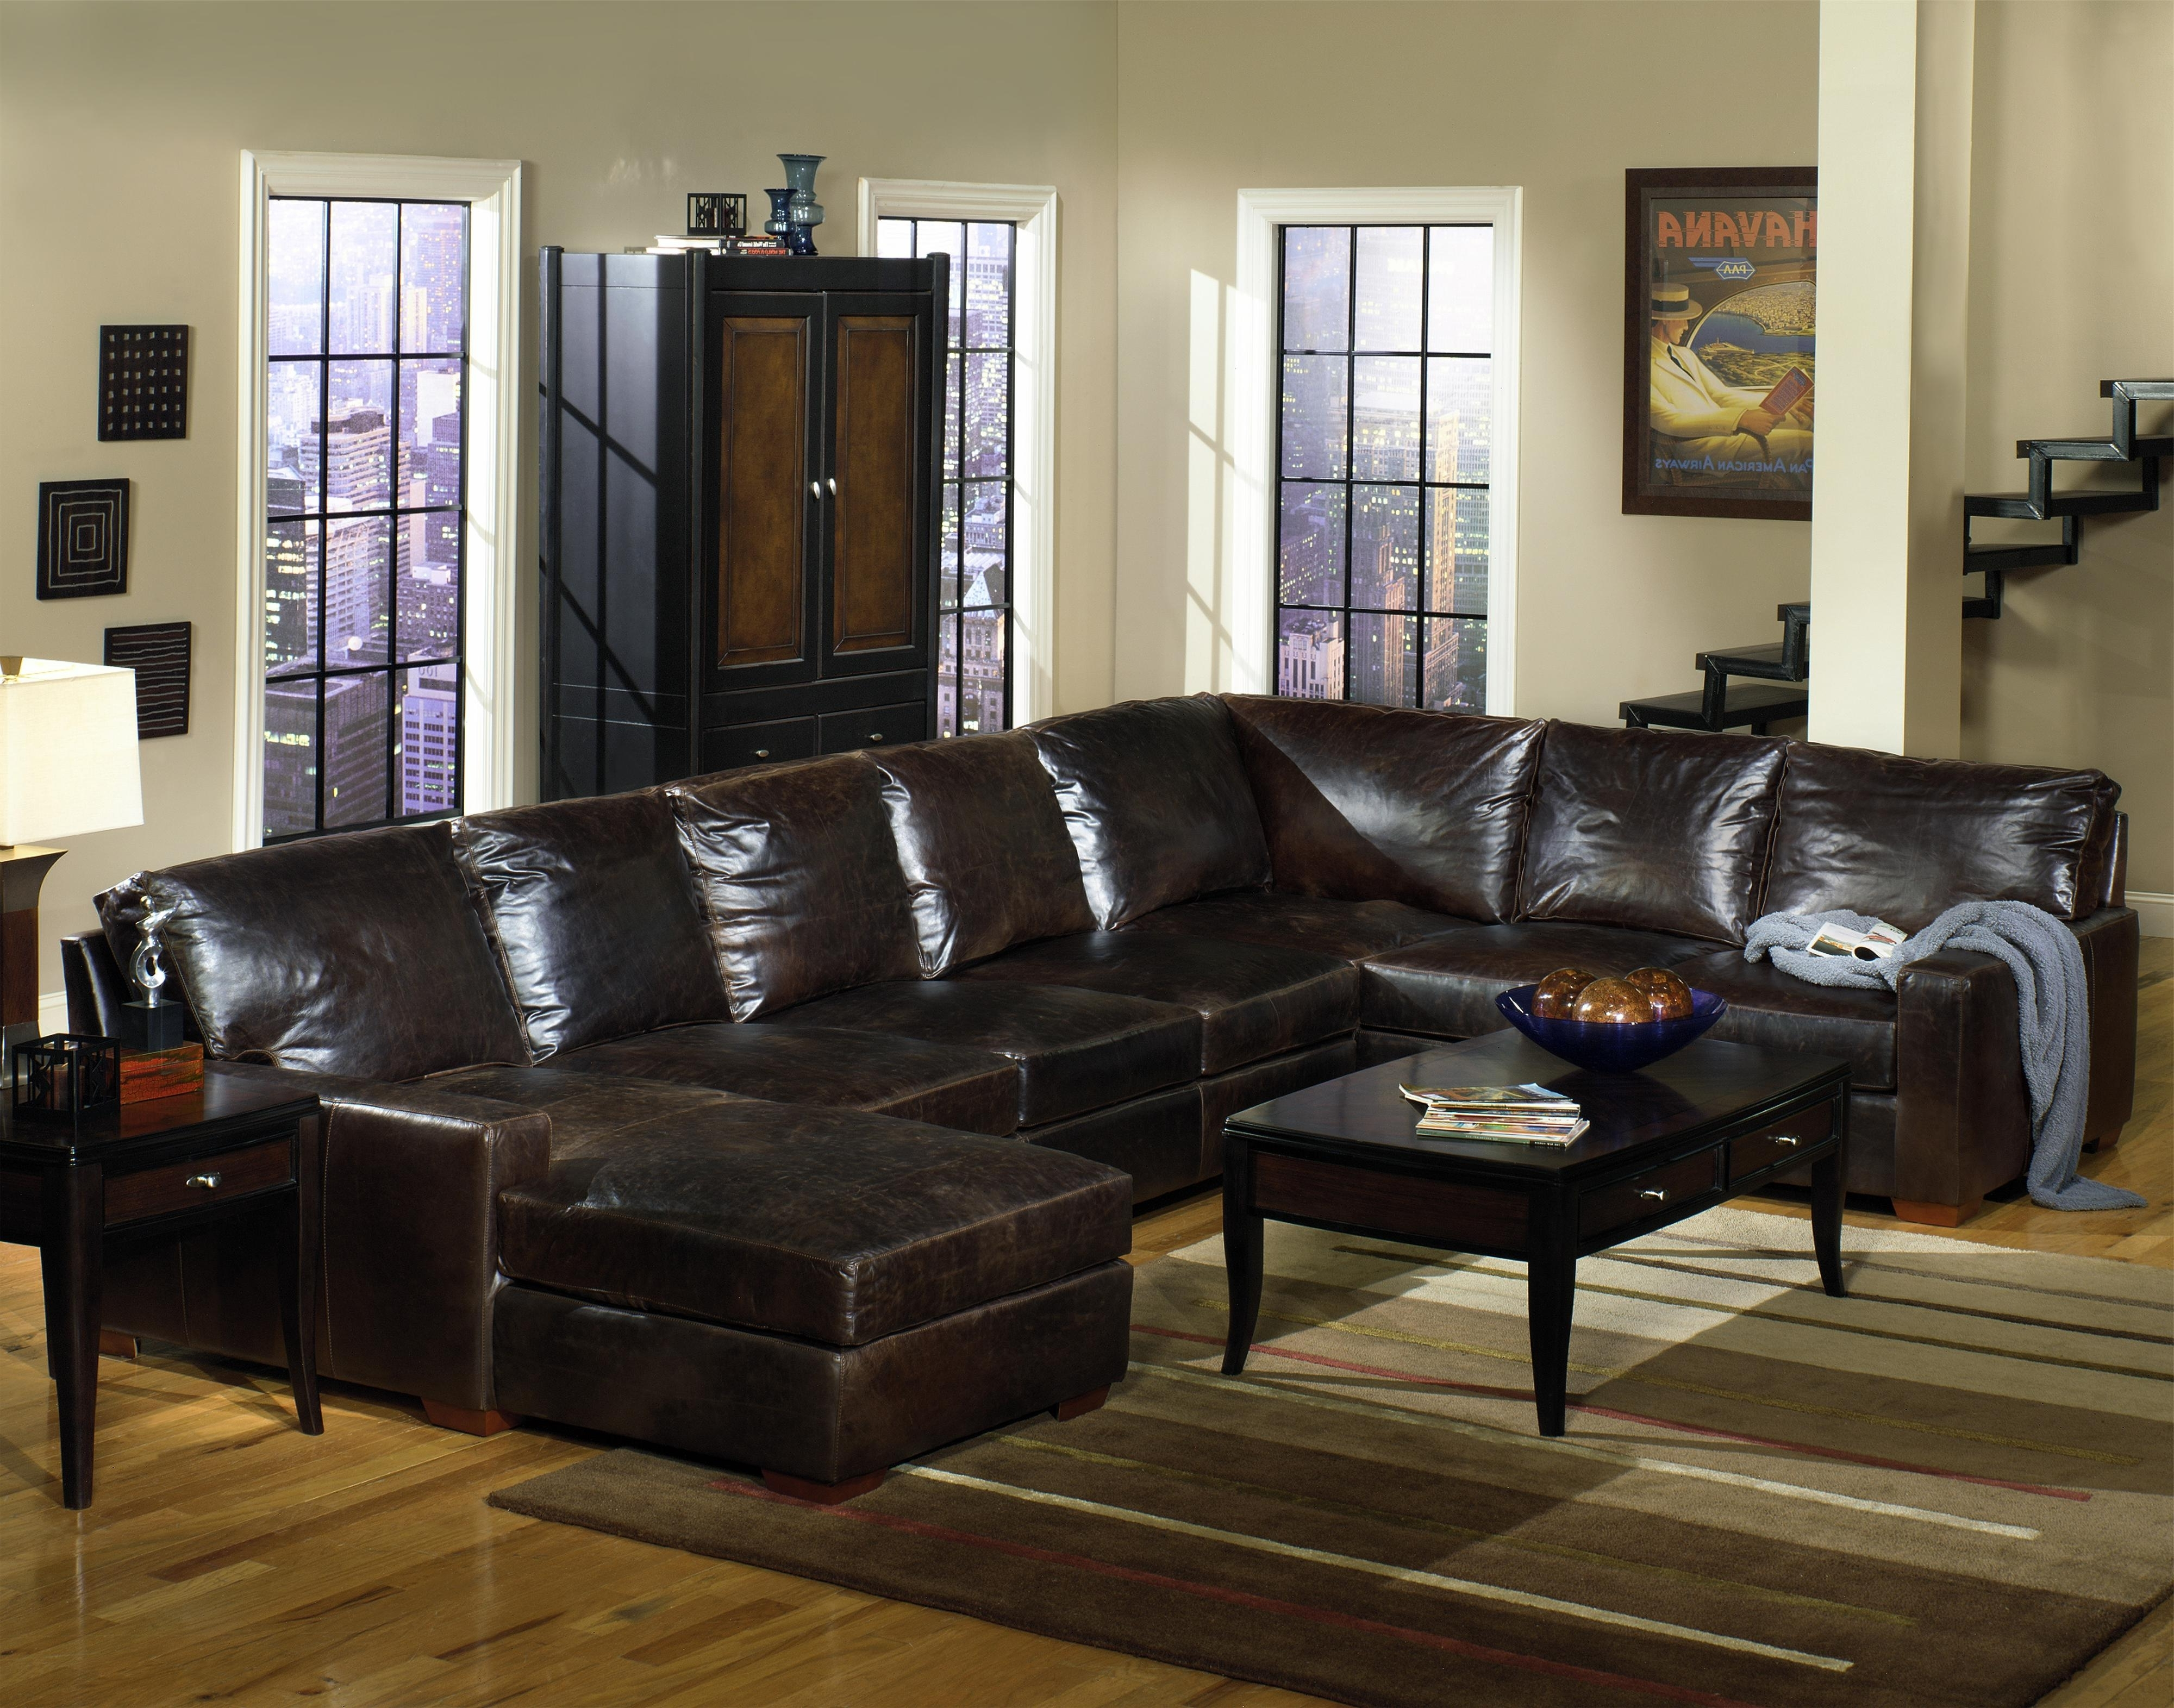 Leather Sectional Sofas With Chaise Inside Preferred Leather Sectional Sofa With Chaise Lounge Leather Sectional Sofas (View 8 of 15)